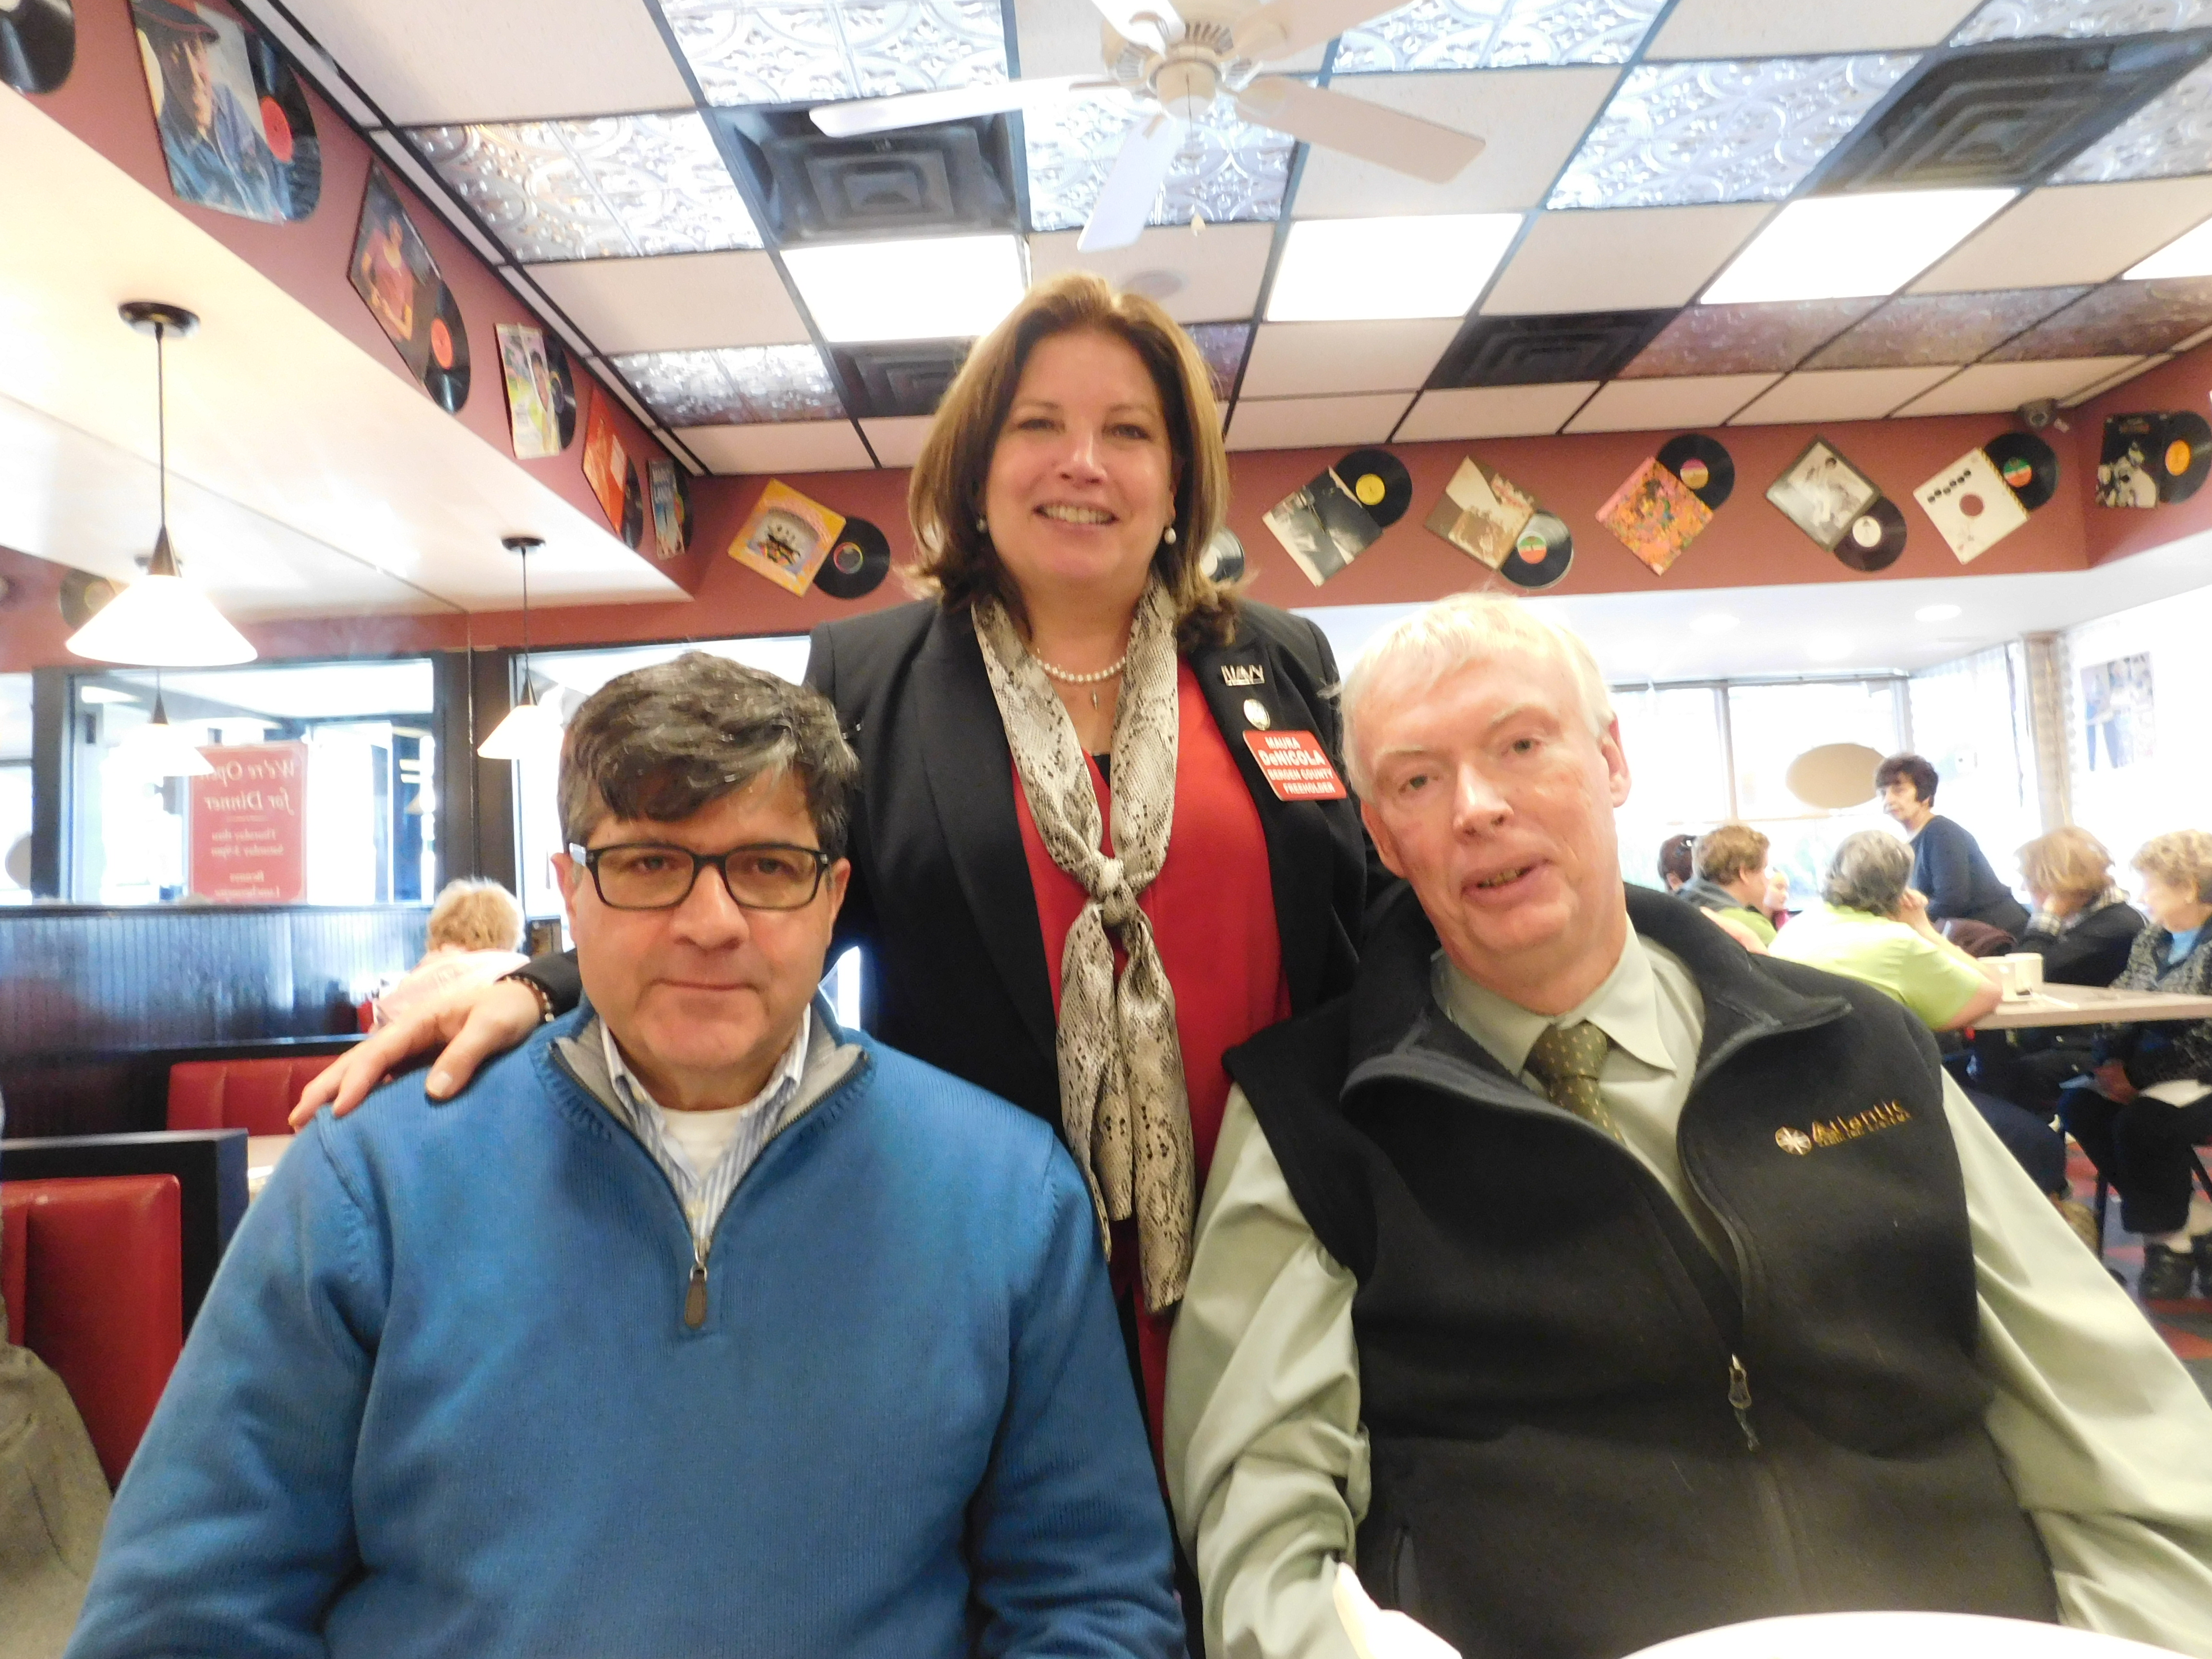 Feeholder DeNicola, Phil DeNicola and Fair Lawn Mayor John Cosgrove at Benny's in Fair Lawn on the morning of Election Day.